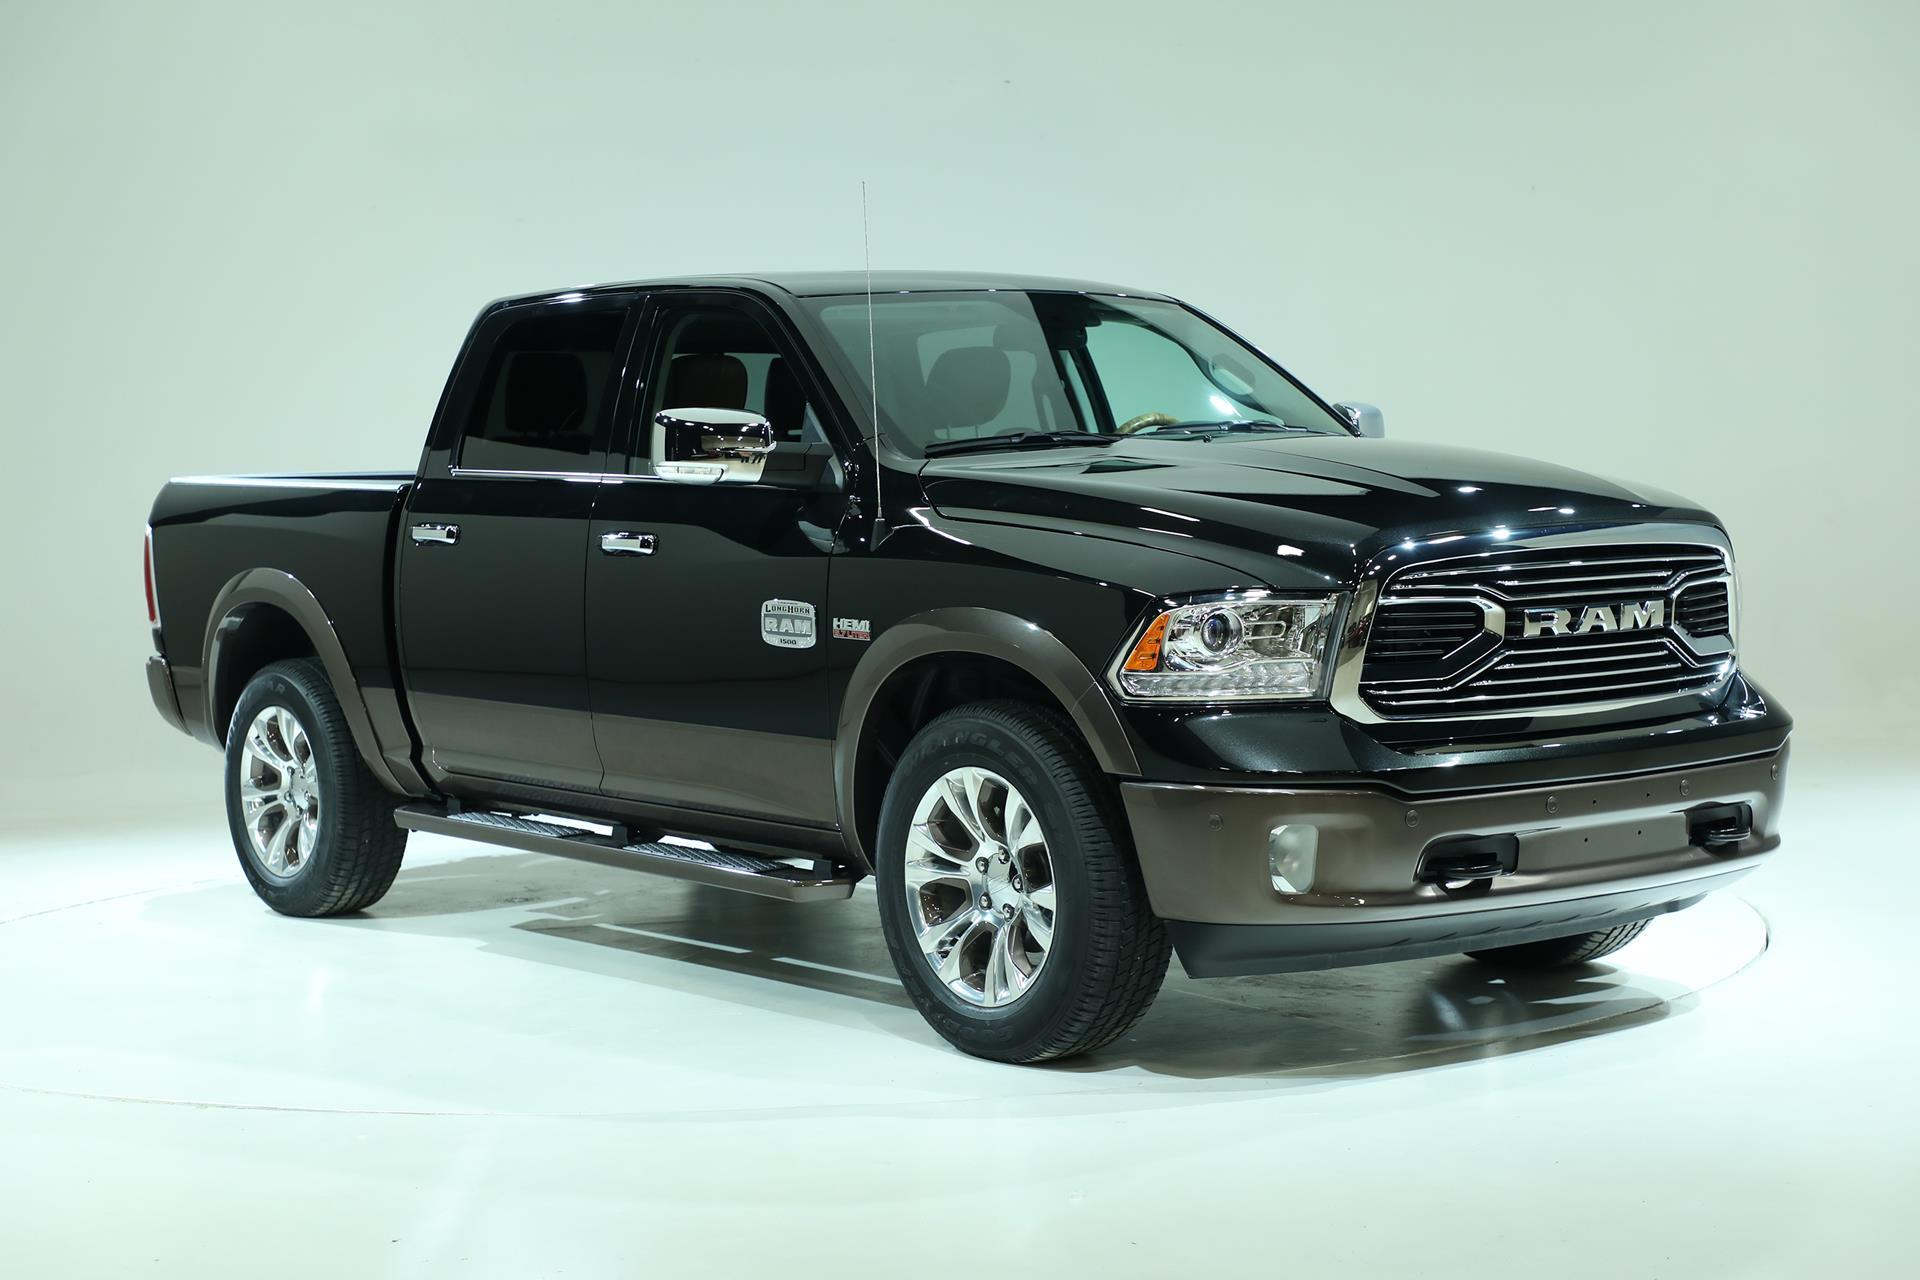 2017 ram 1500 laramie longhorn technical specifications and data engine dimensions and